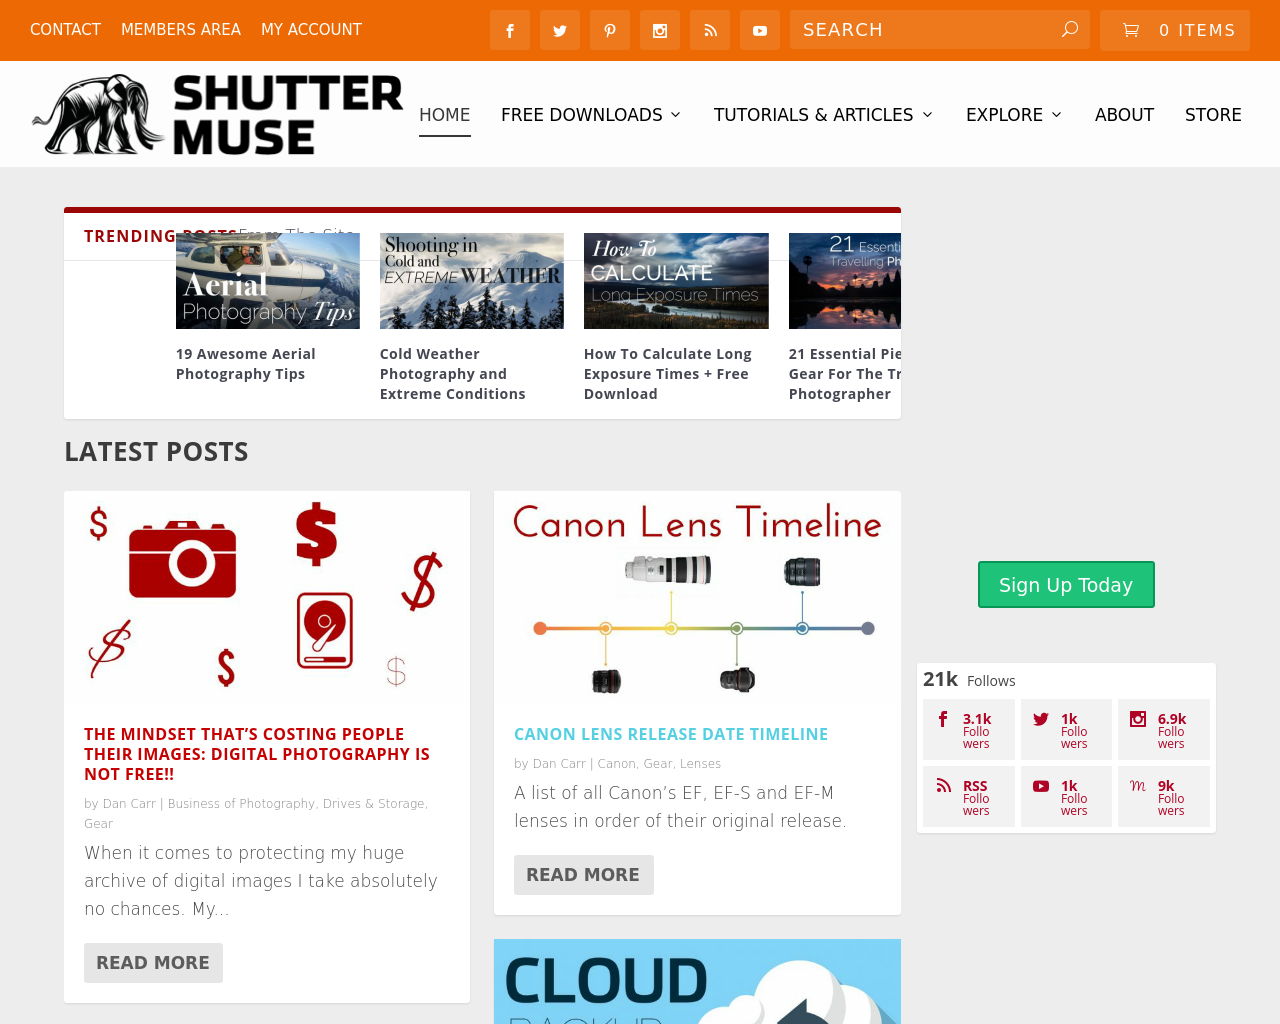 Shutter-Muse-Advertising-Reviews-Pricing